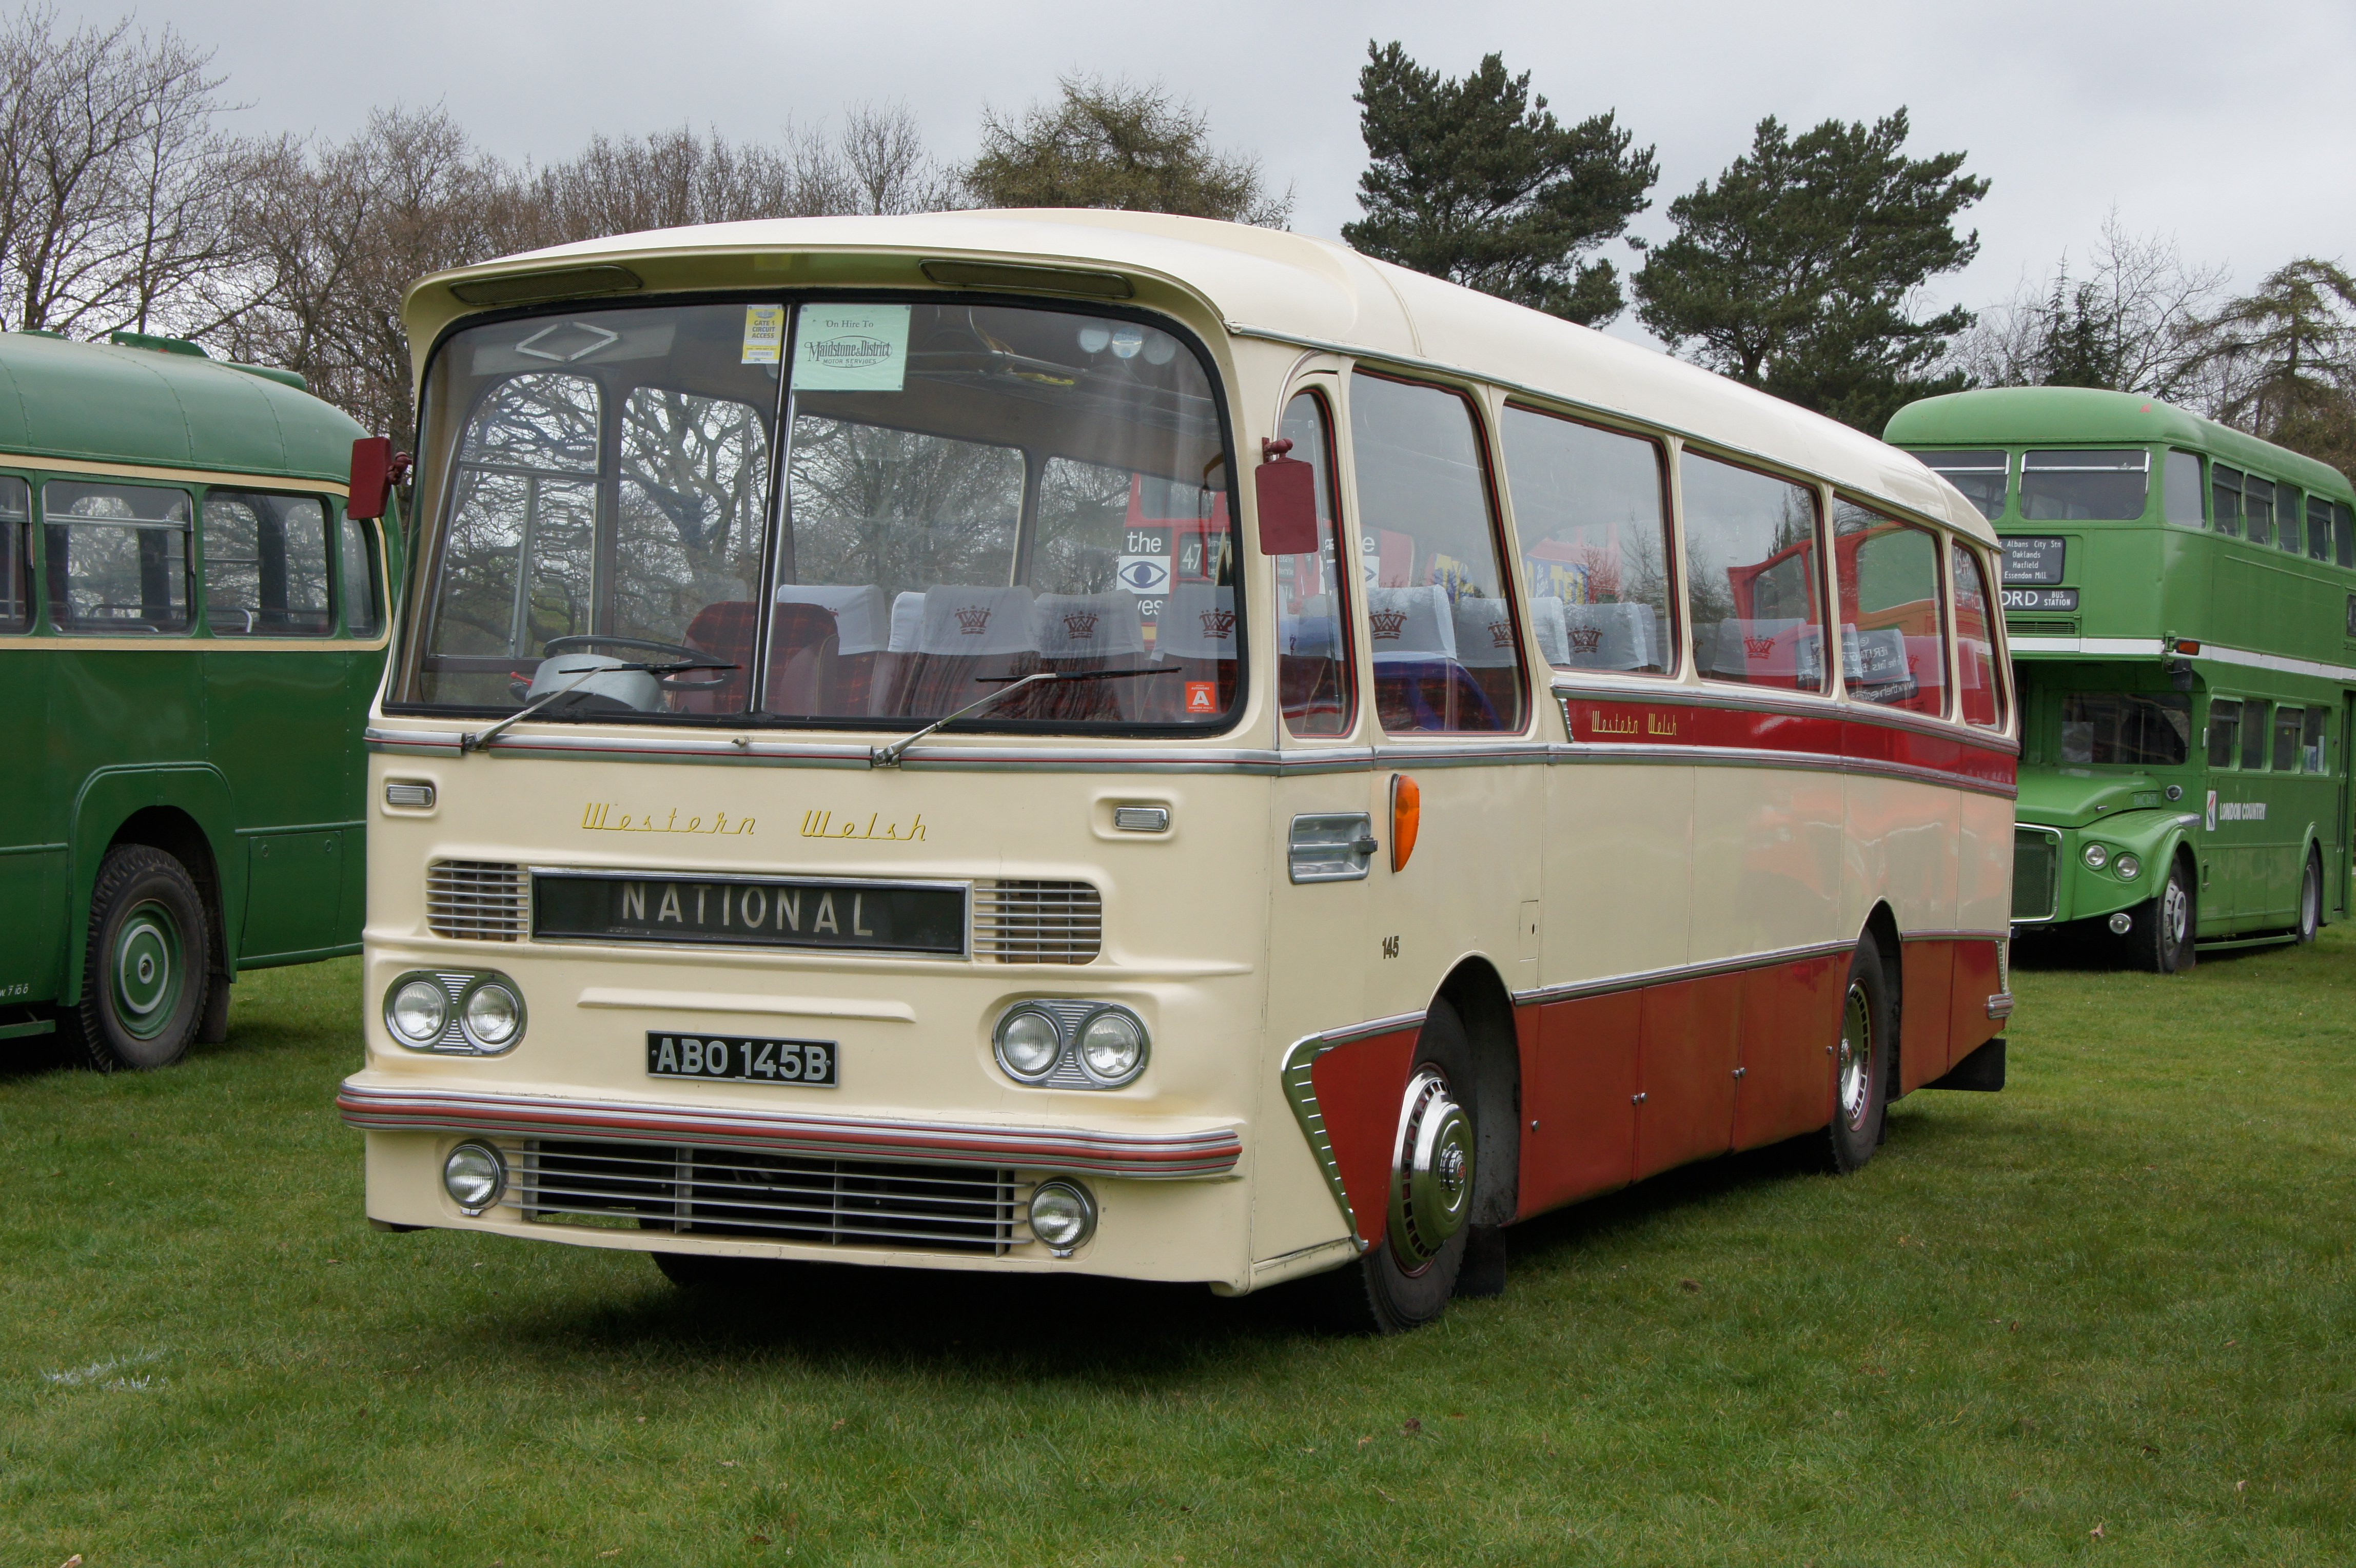 File Western Welsh Coach 145 Abo 145b M Amp D And Ek 60